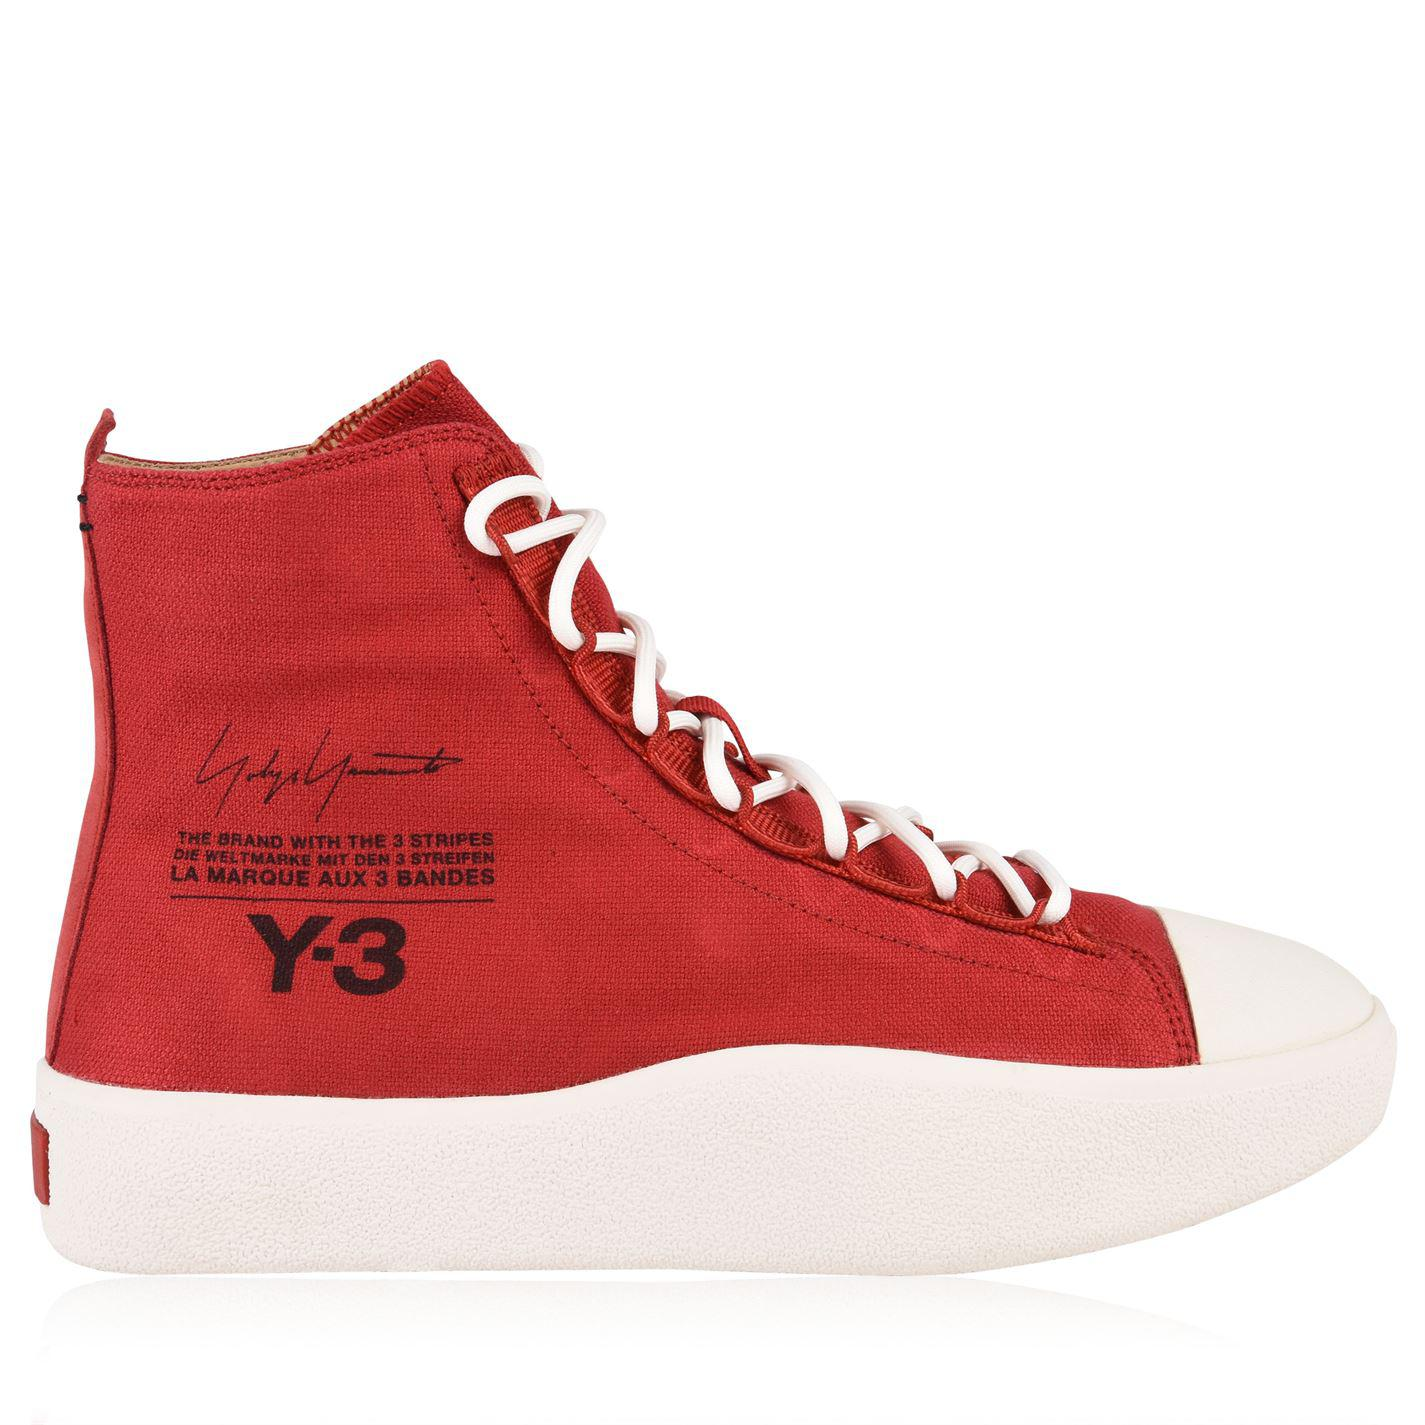 616b1b7ca Lyst - Y-3 Bashyo High Top Trainers in Red for Men